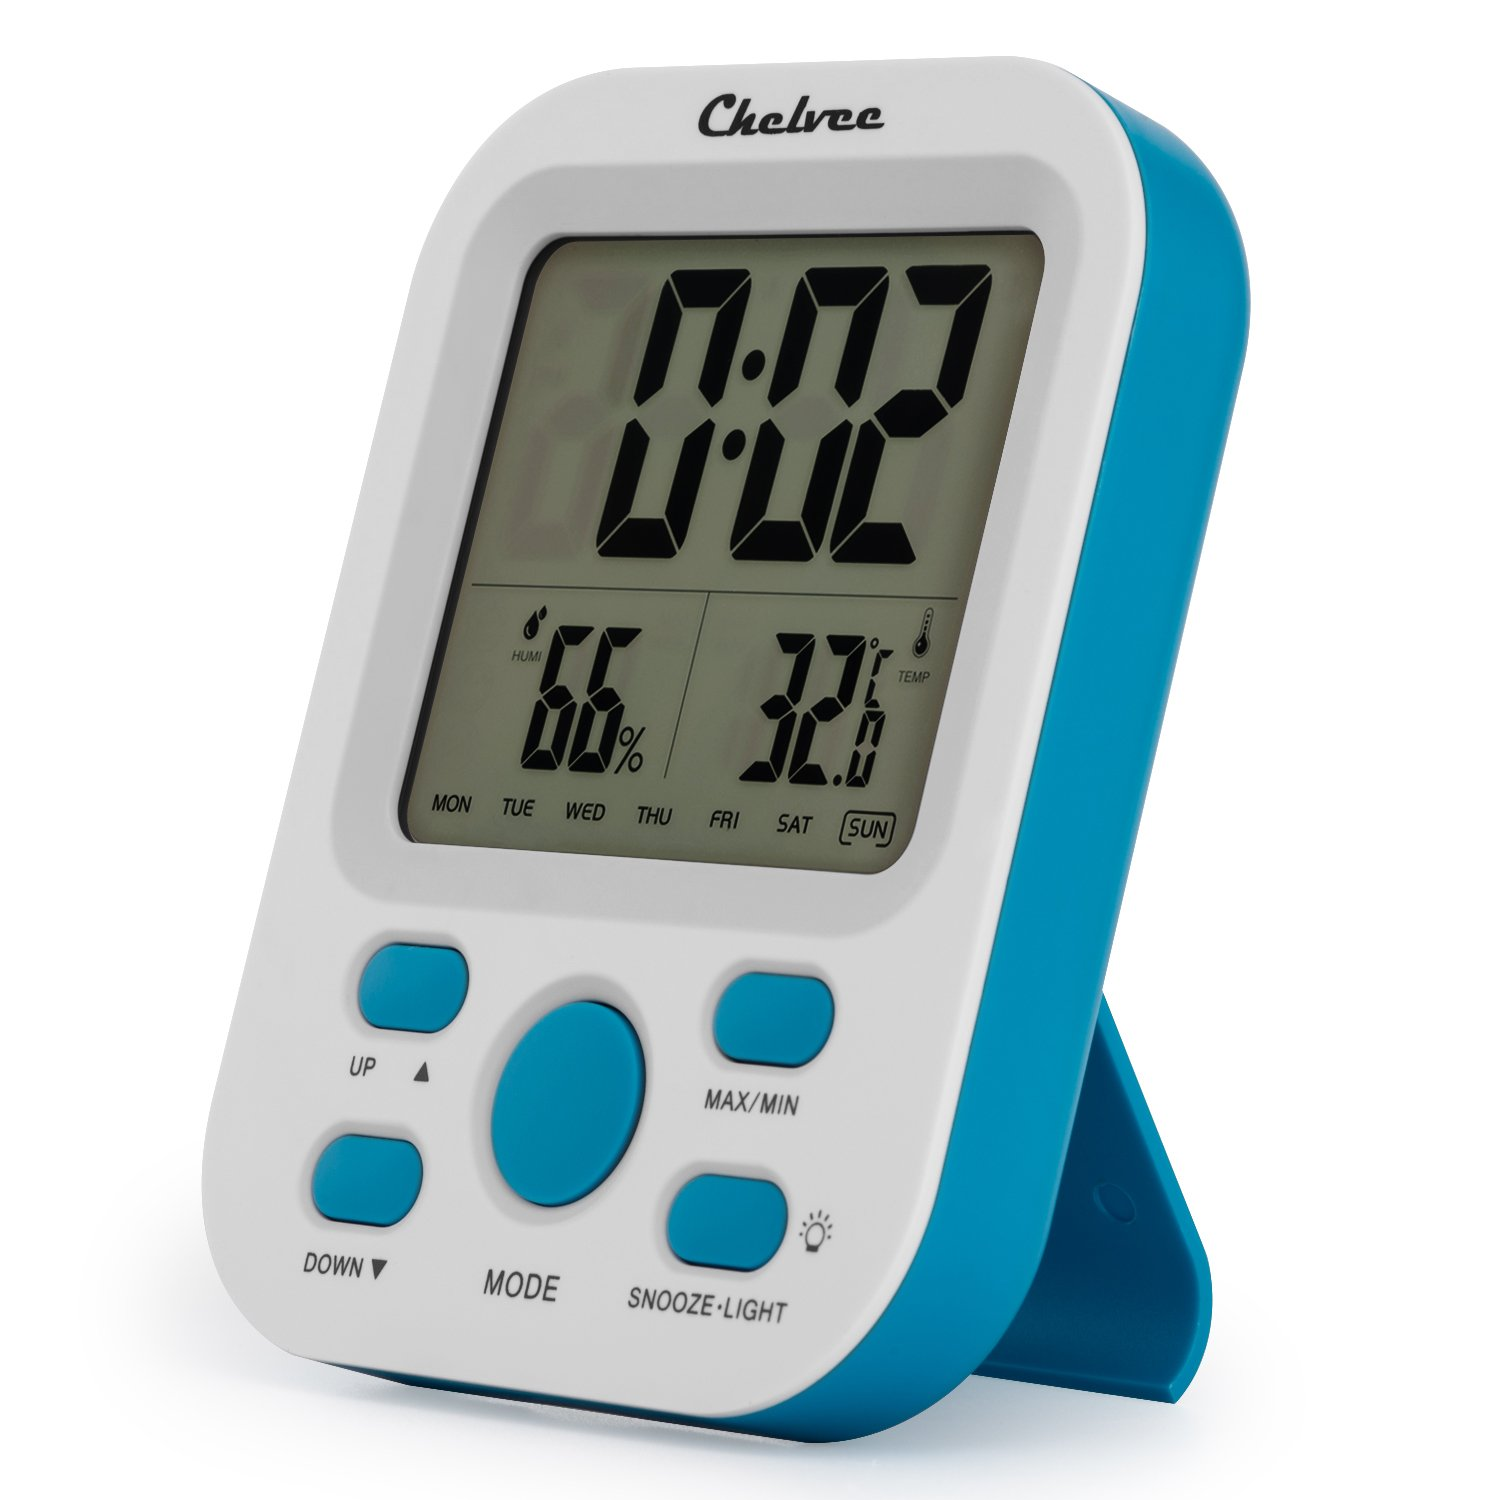 Chelvee Alarm Clock, Large LCD Screen Alarm Clock with Time/Date/Temperature/Humidity Display, Snooze Function, Stand or Wall Mount, Battery Operated (Blue)